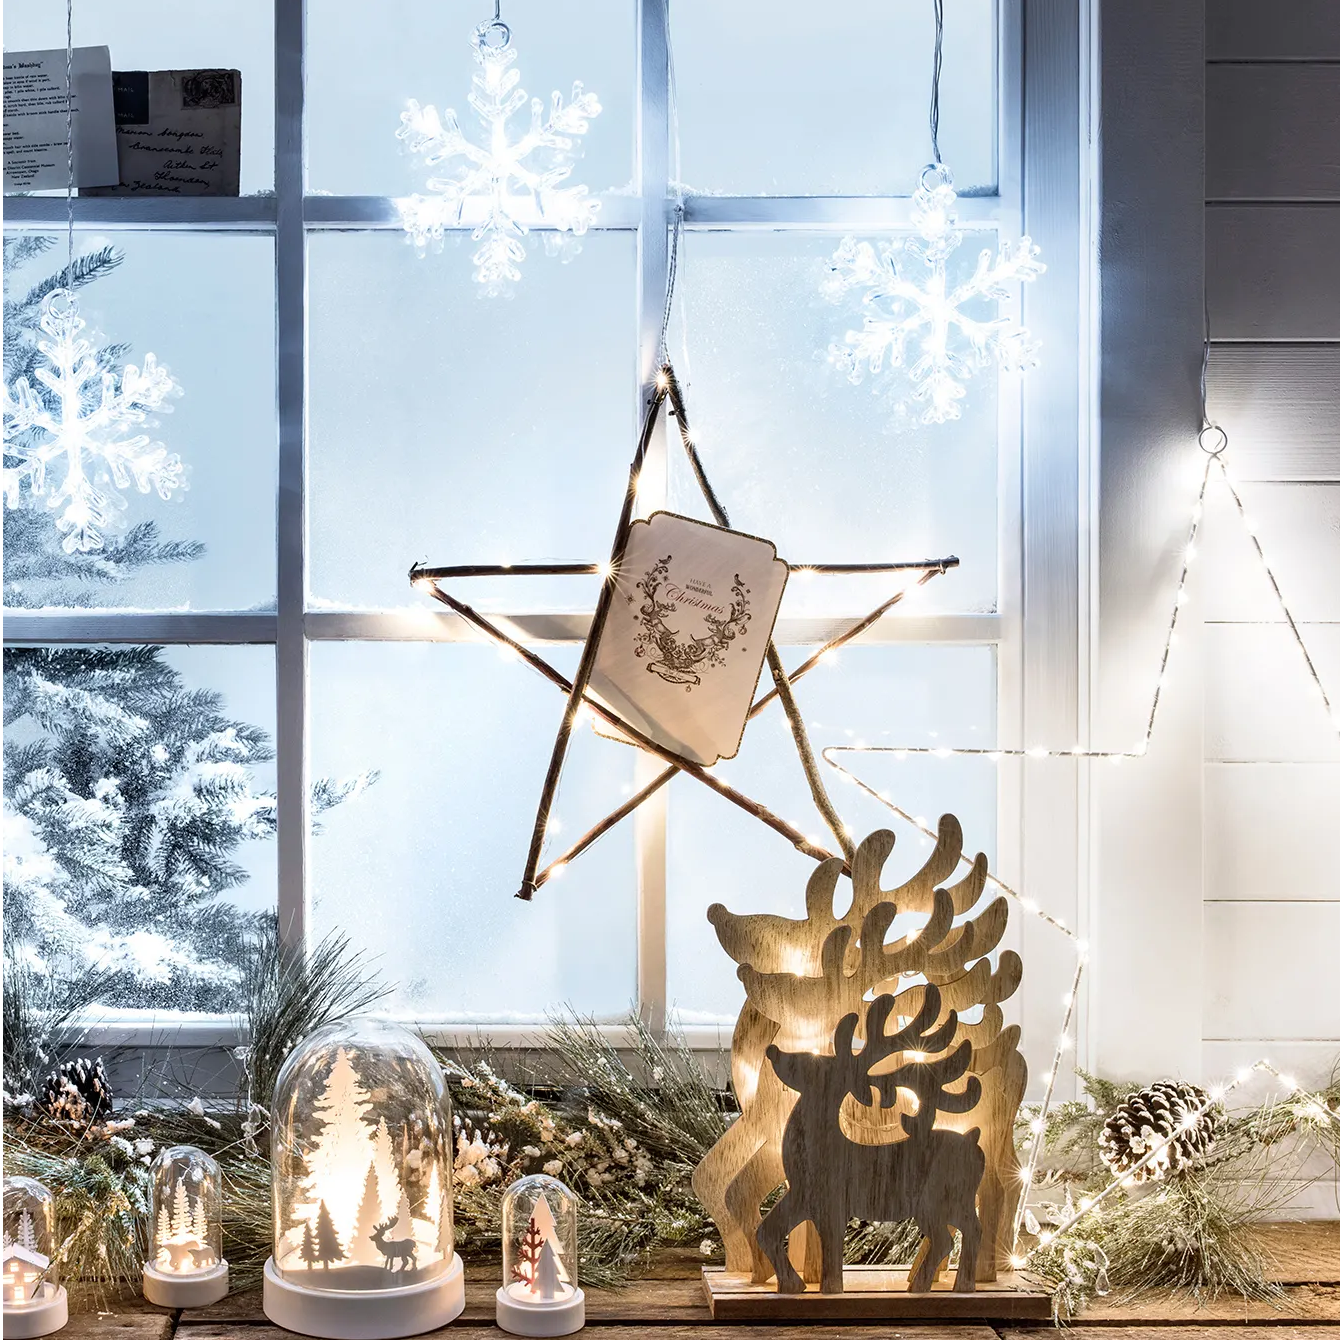 Stockholm Snowflake Christmas Window Light hanging above a window display of wooden ornaments